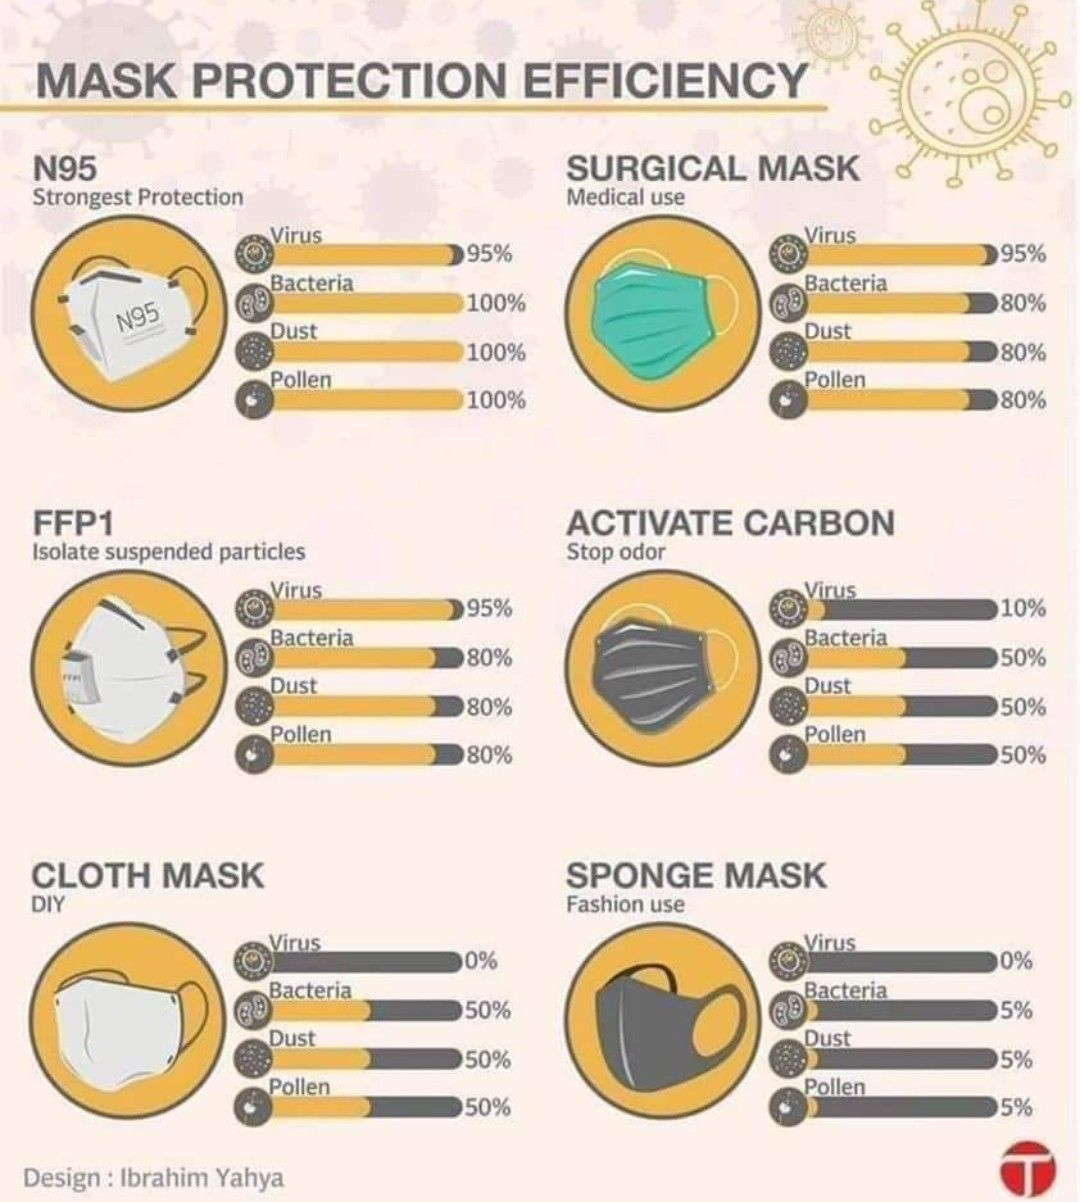 Pin by D S on Good to know in 2020 Diy face mask, Mask